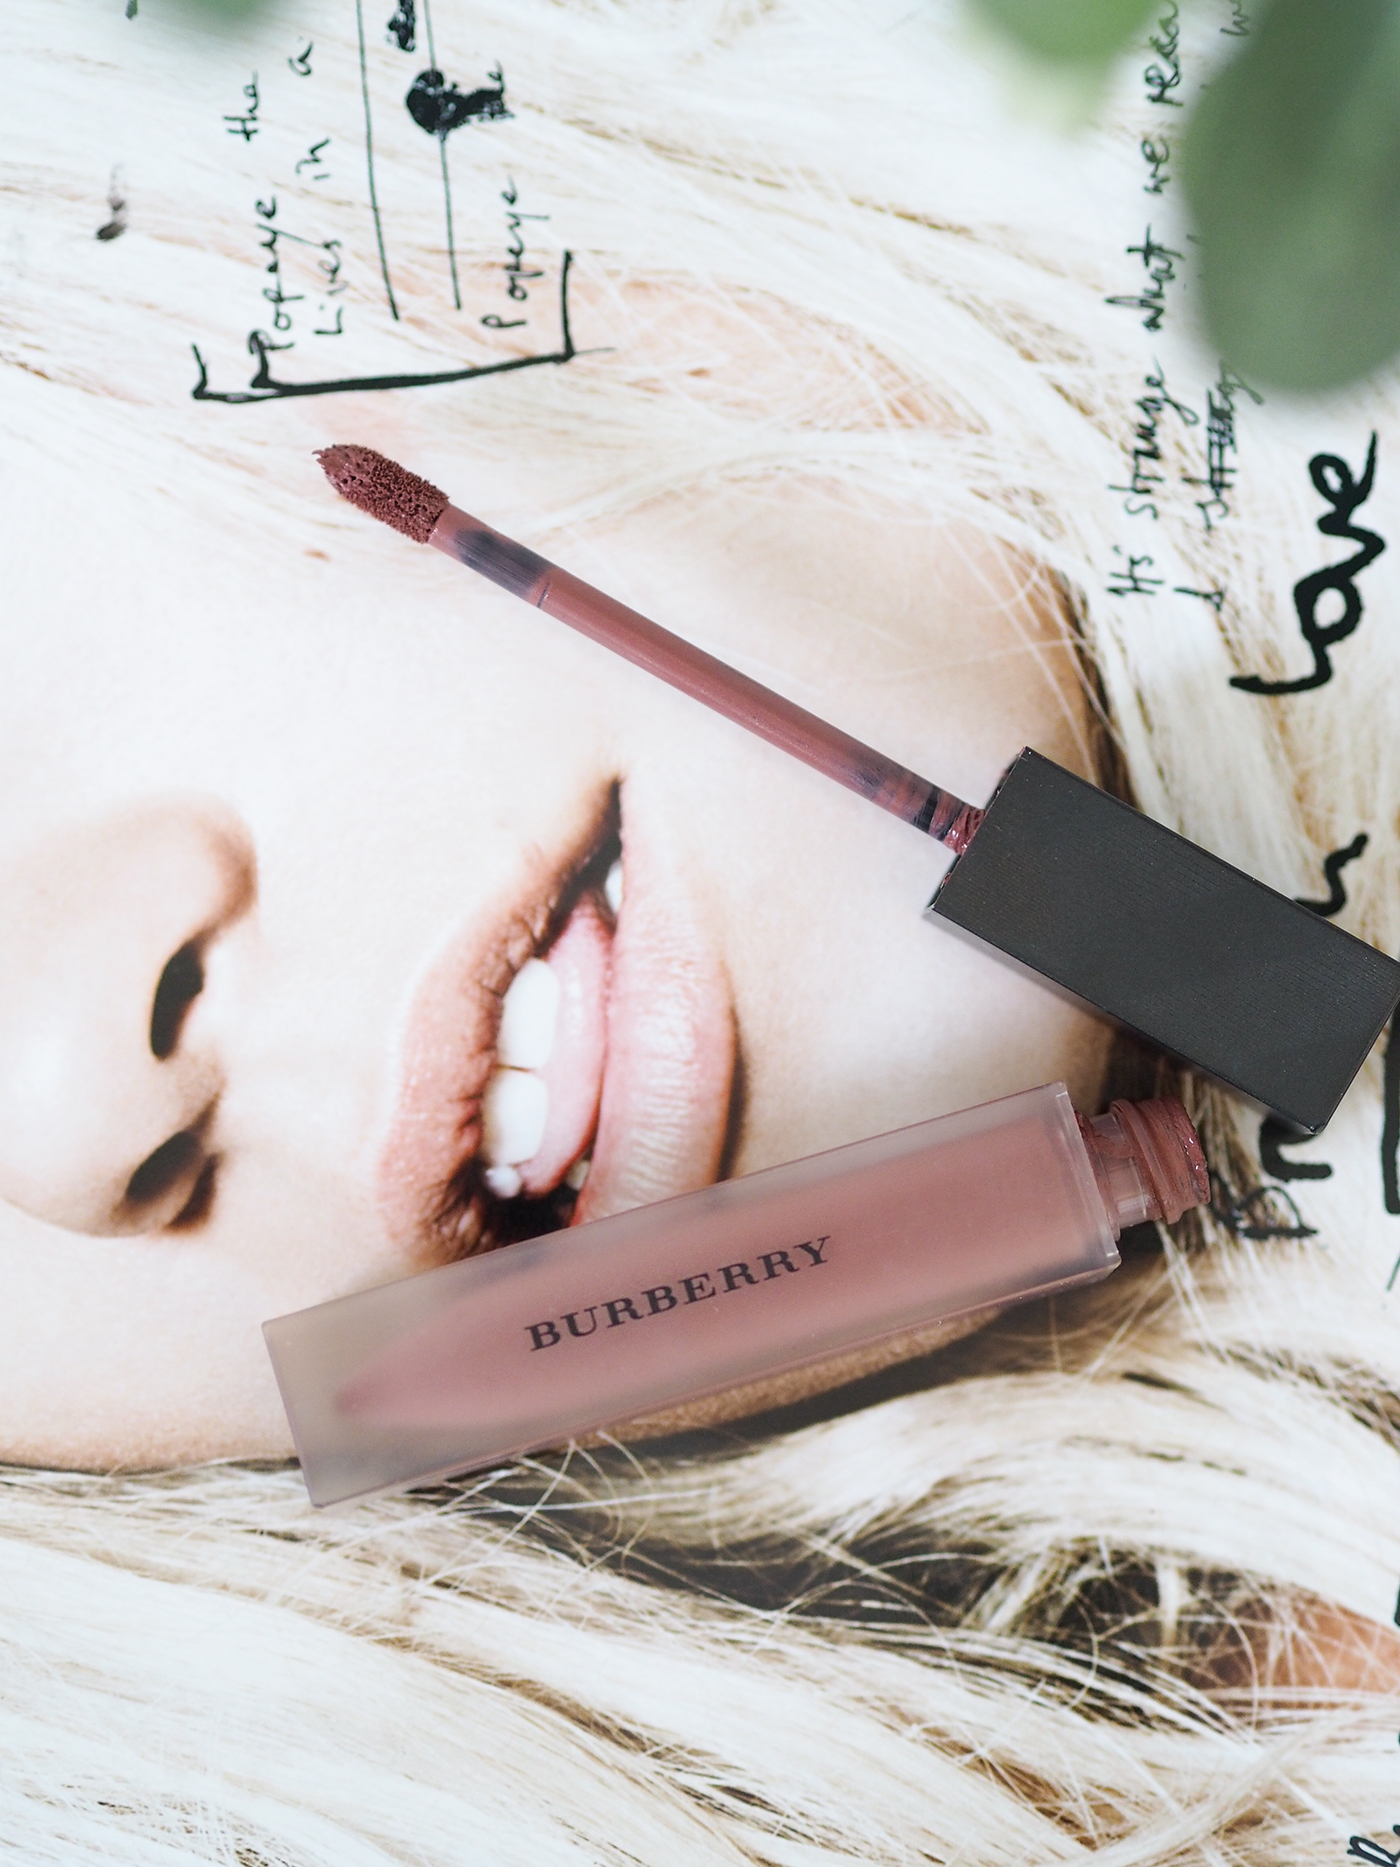 Burberry liquid lipstick